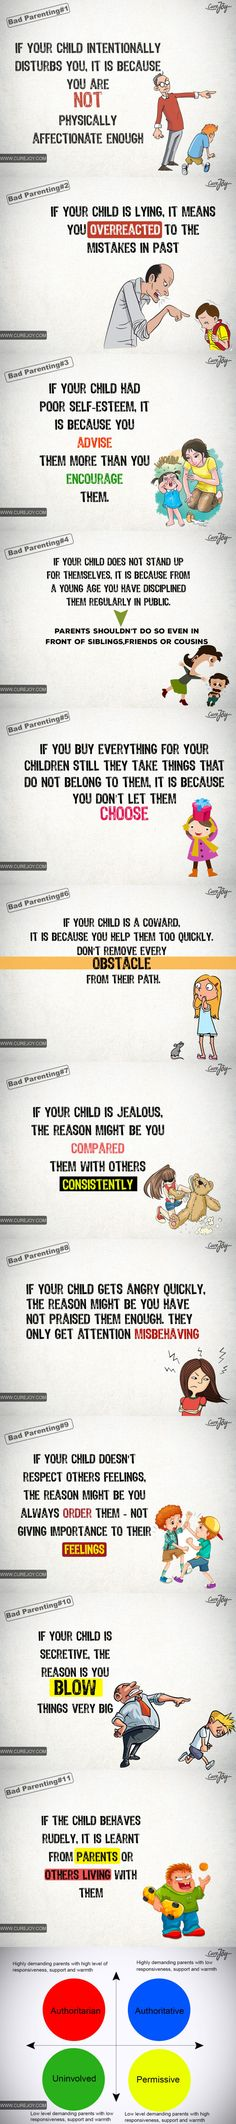 Found parents some advice, trust me I'm a psychologist - 9GAG